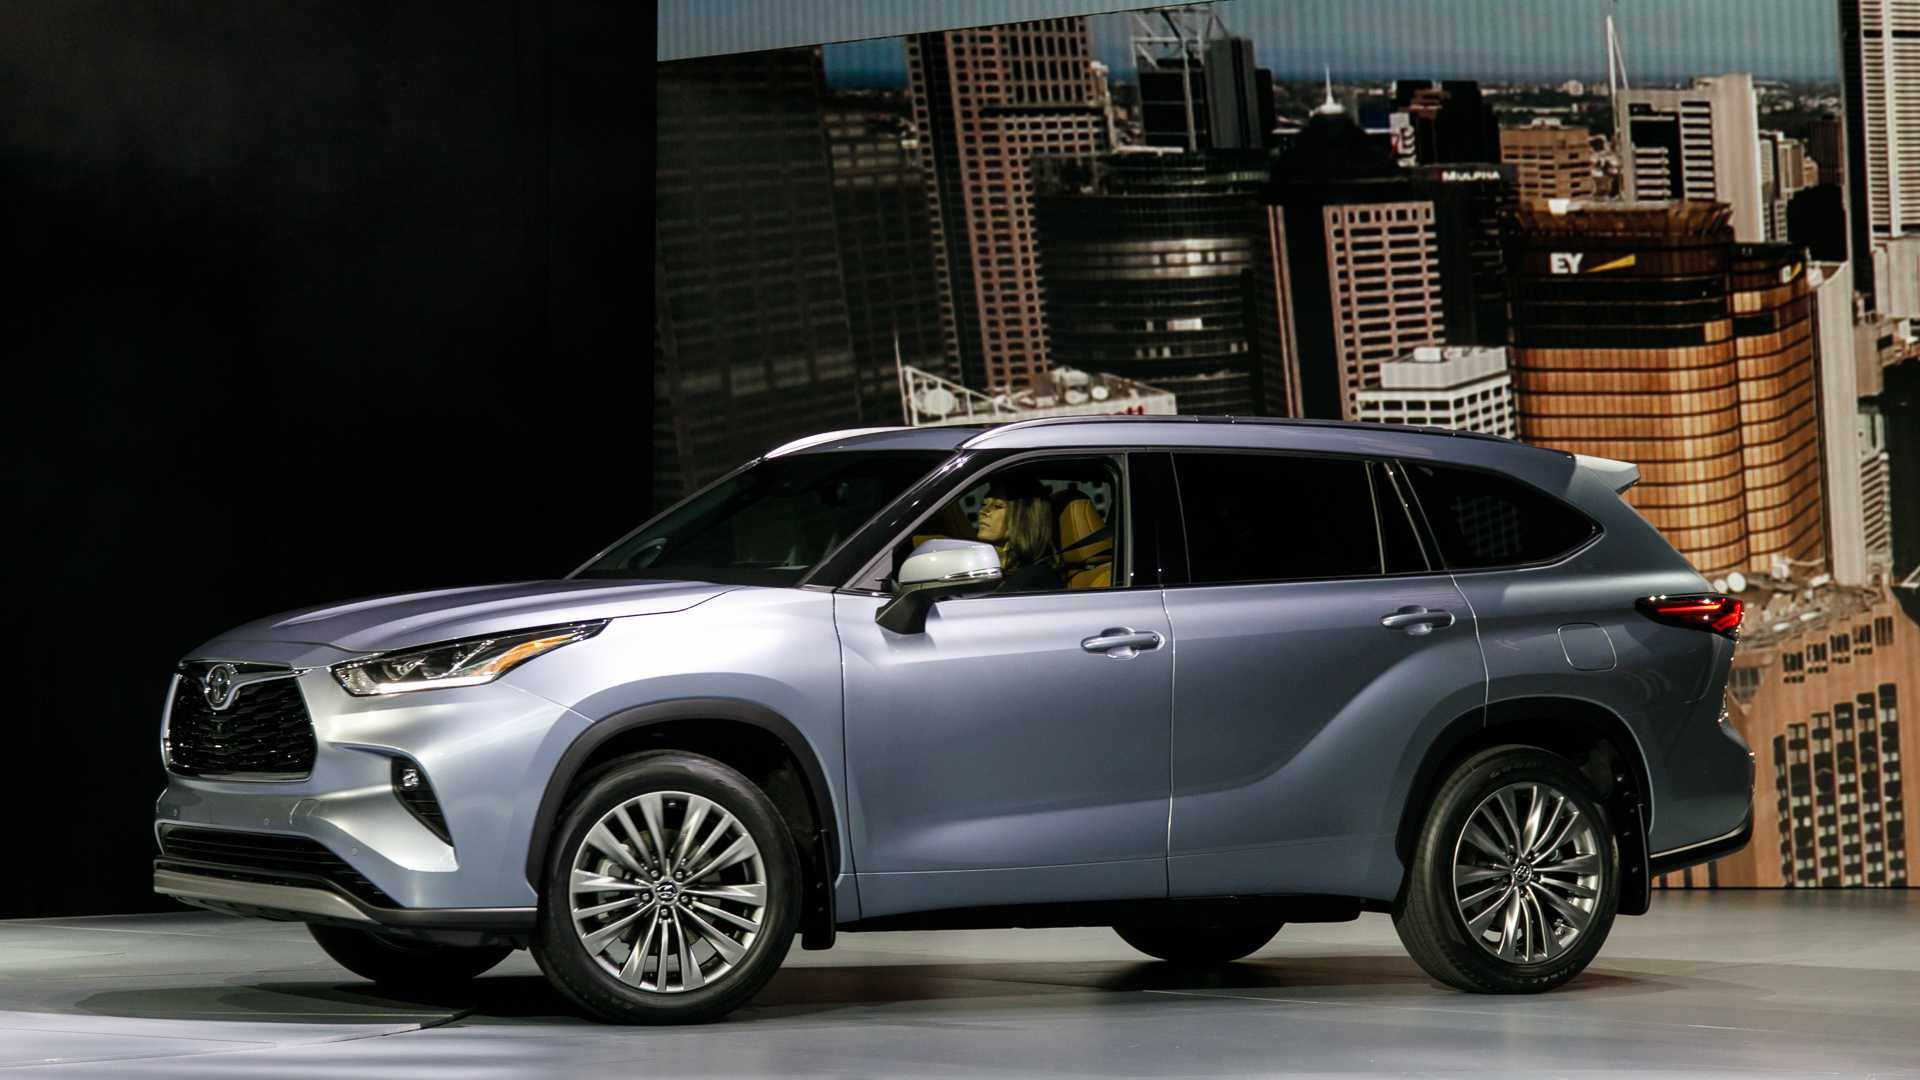 23 New Toyota Highlander 2020 Redesign First Drive by Toyota Highlander 2020 Redesign